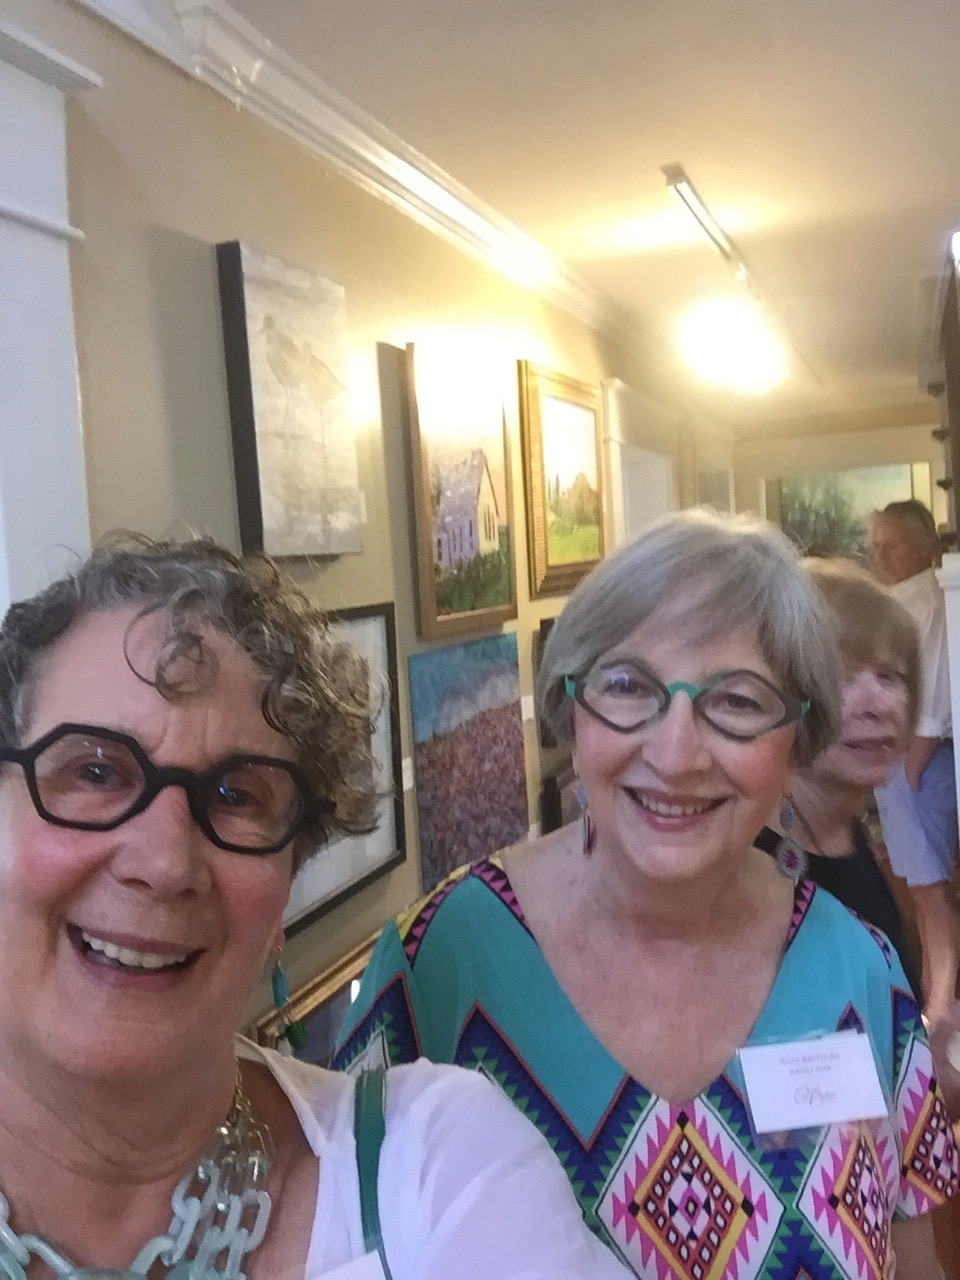 phyllis-sharpe-and-alie-bachman-at-tyler-white-gallery-sassy-opening-IMG_0945.jpg